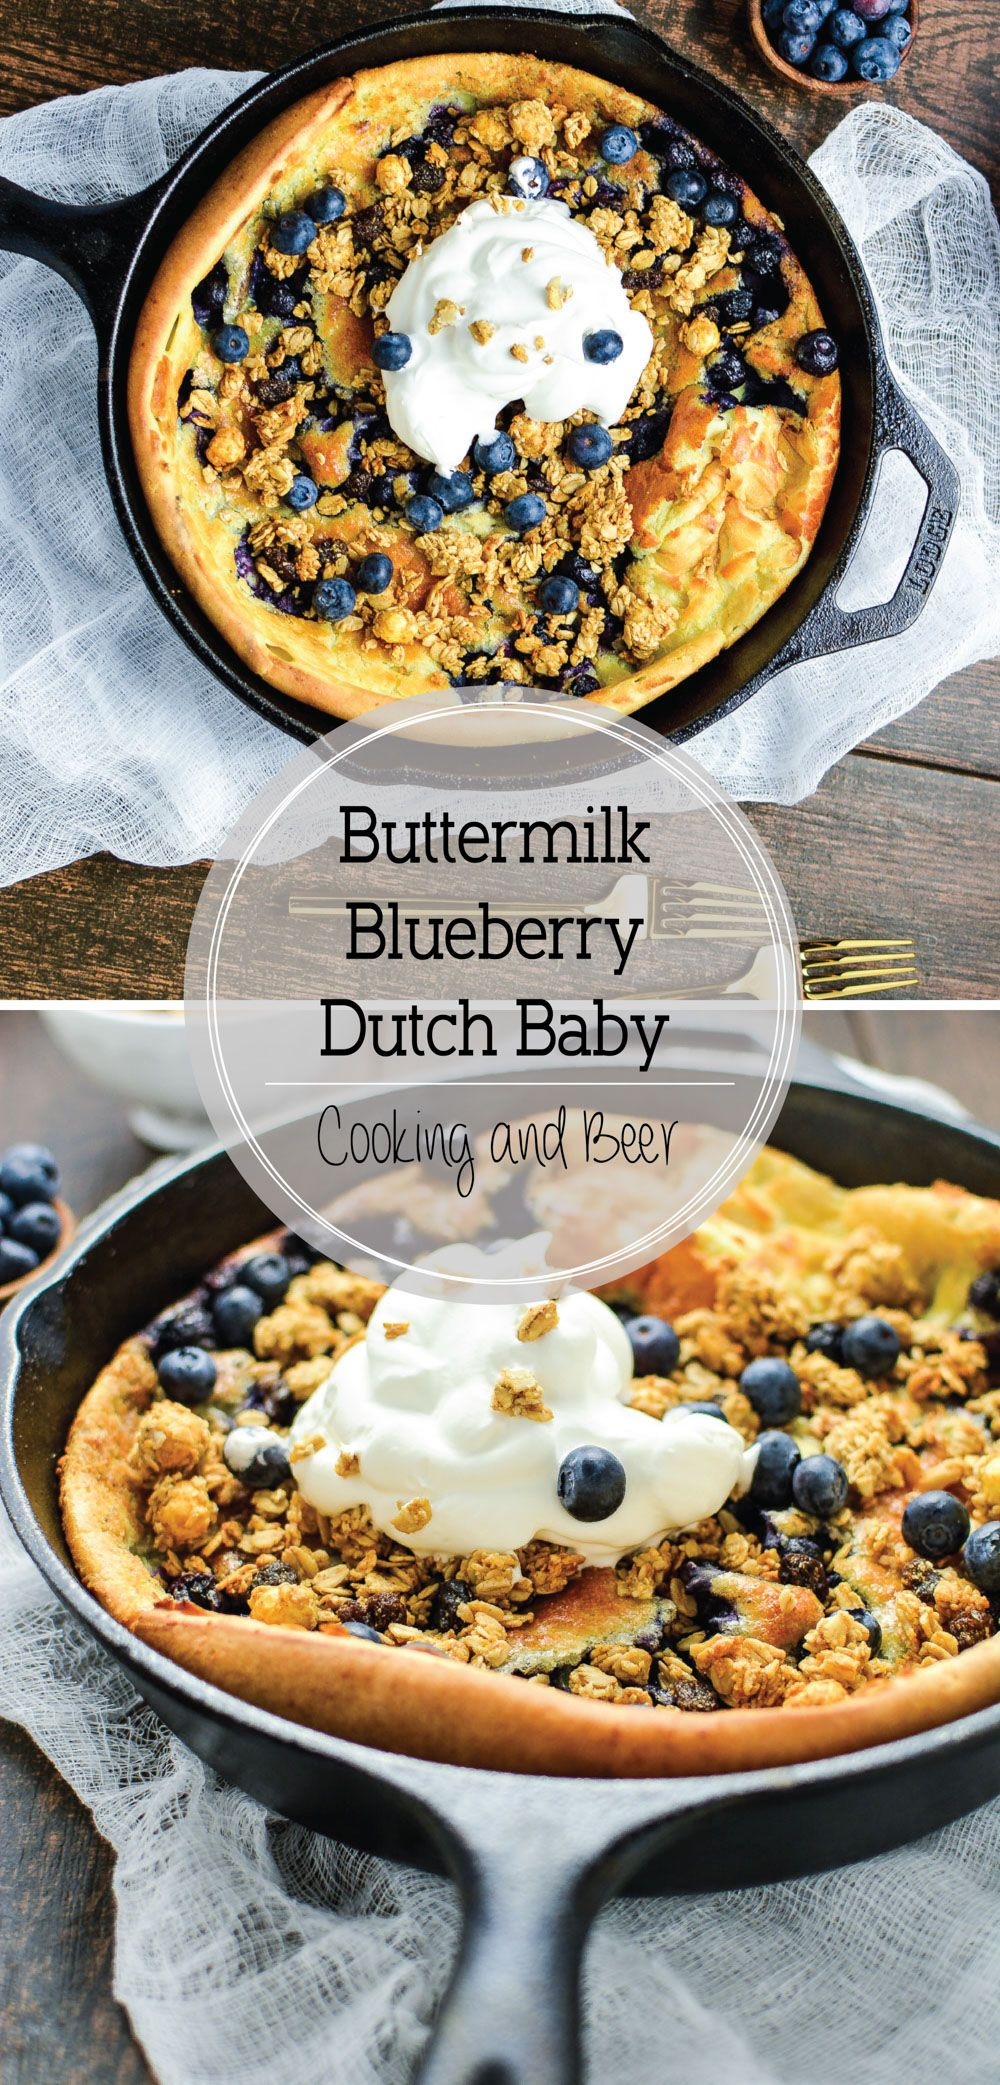 Buttermilk Blueberry Dutch Baby Pancake with Lemon Crema ...